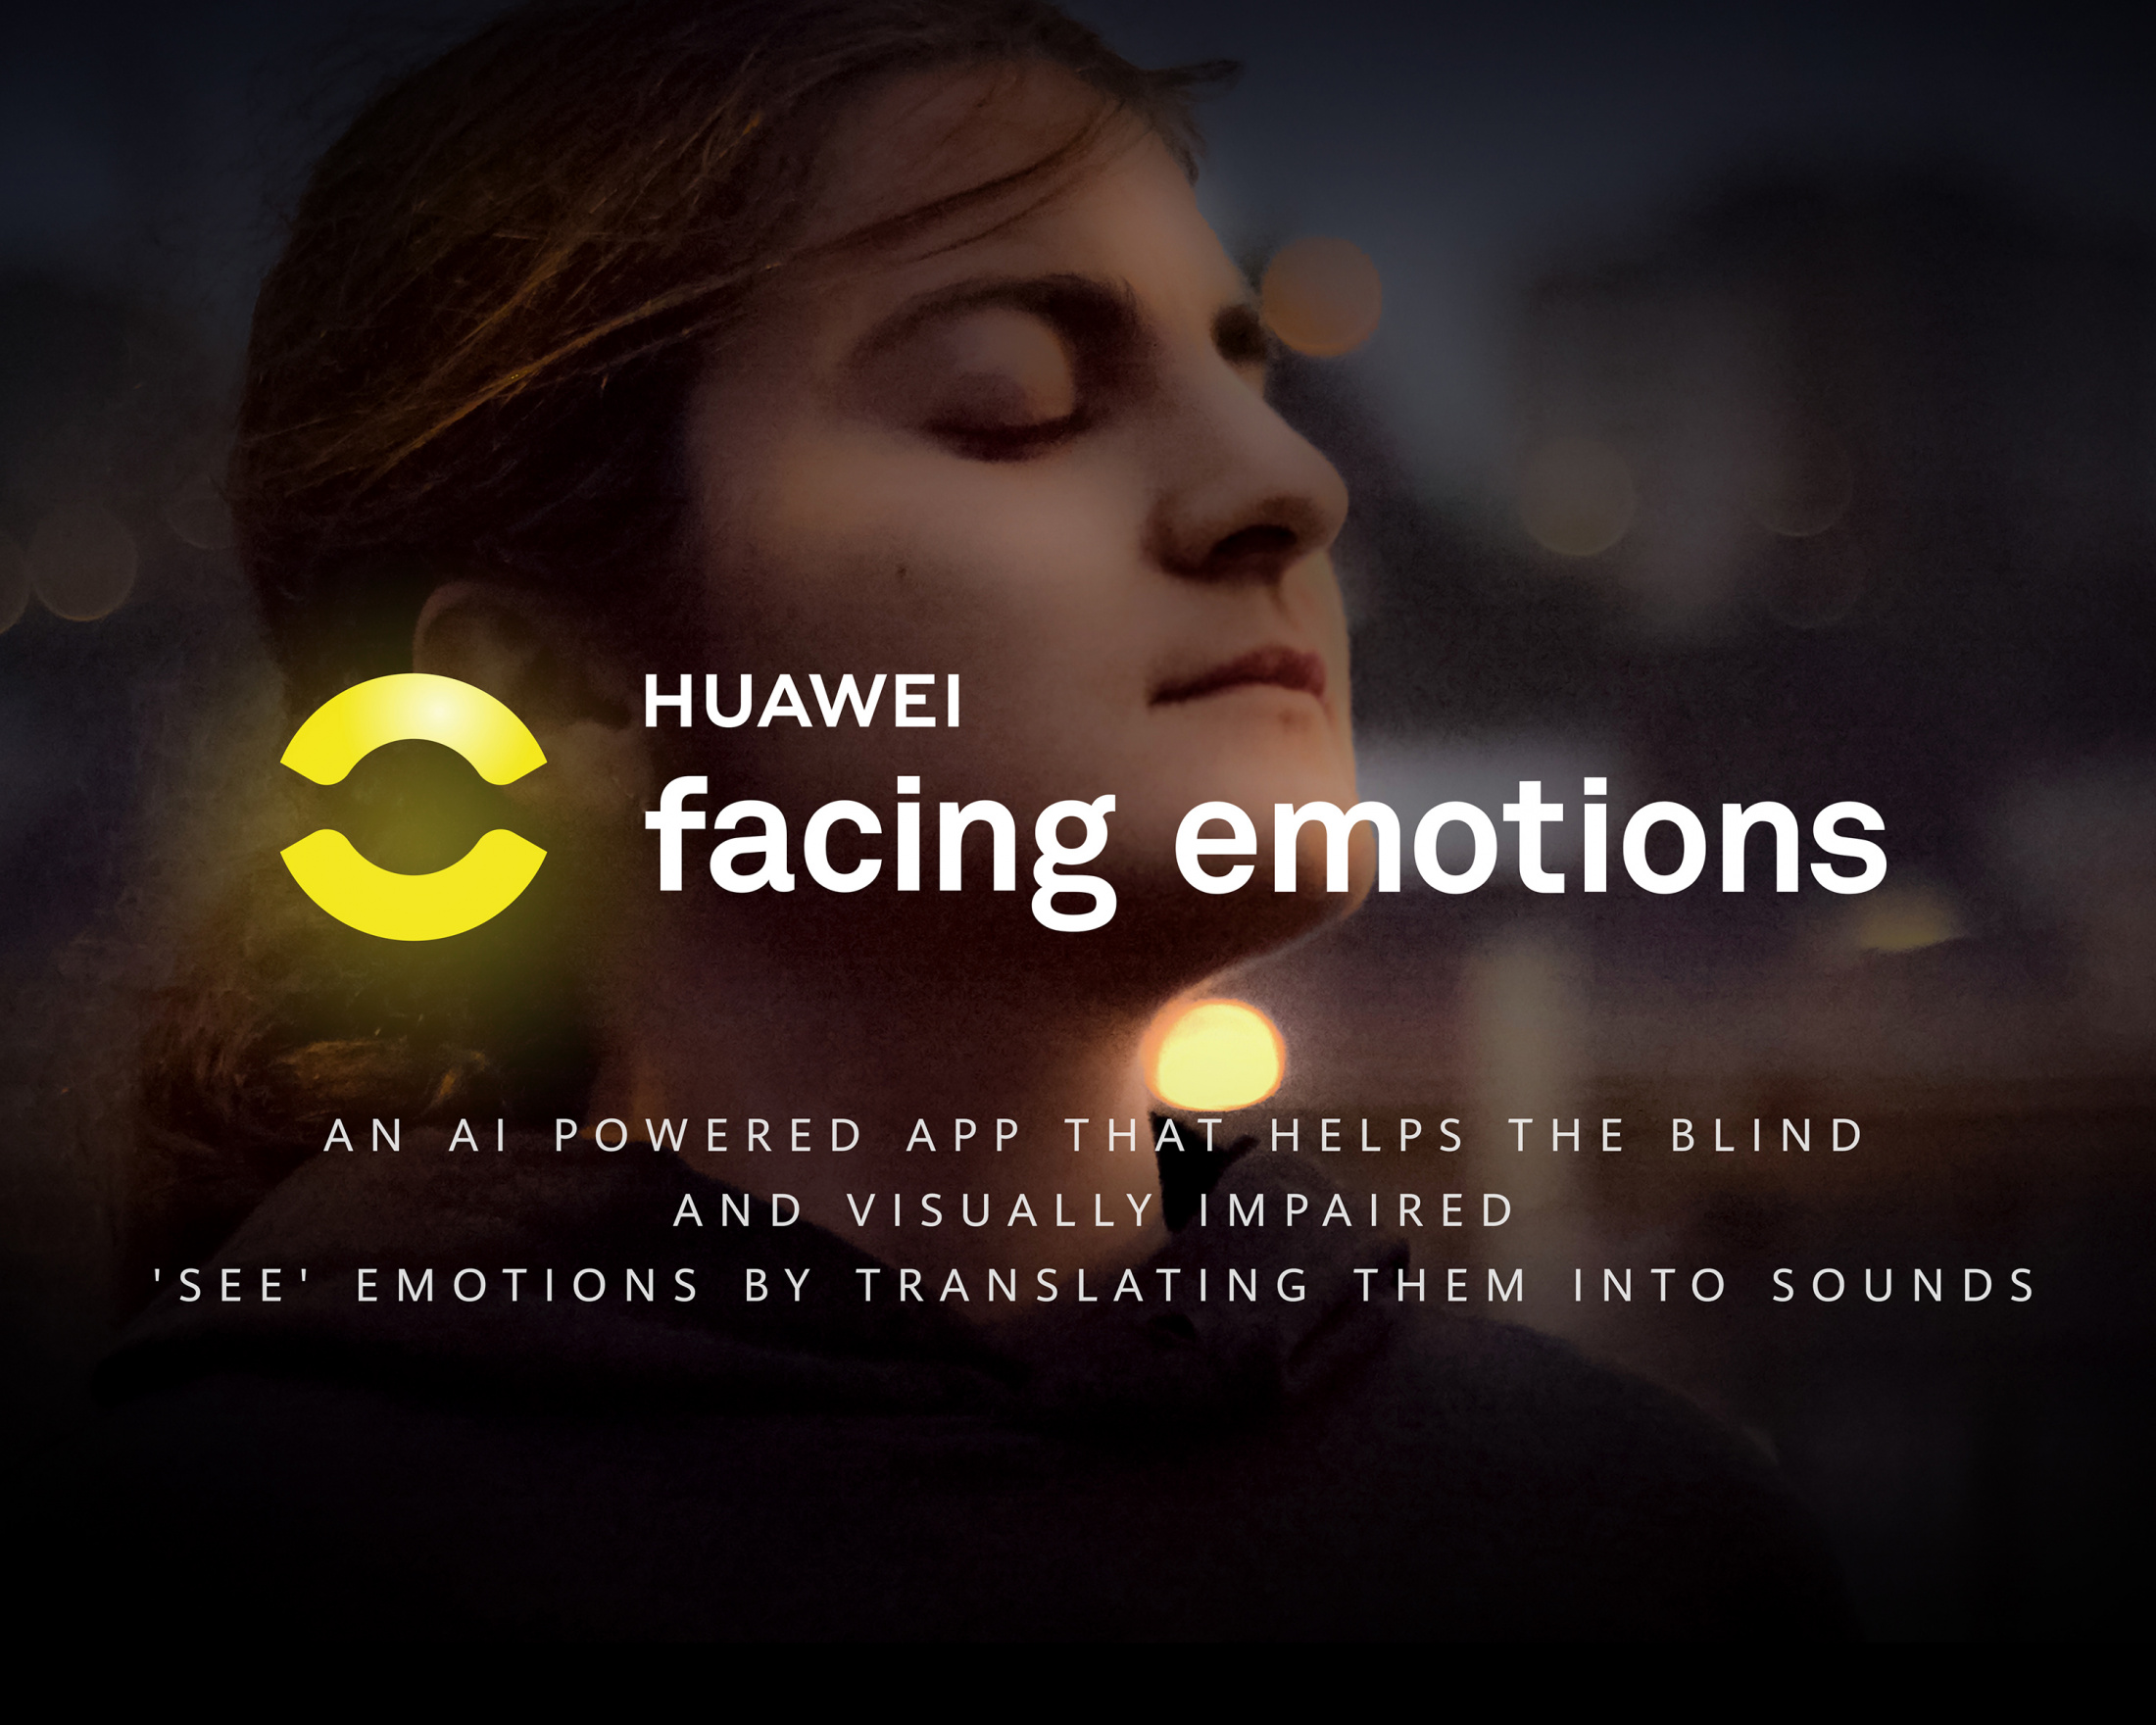 Huawei Facing Emotions Thumbnail